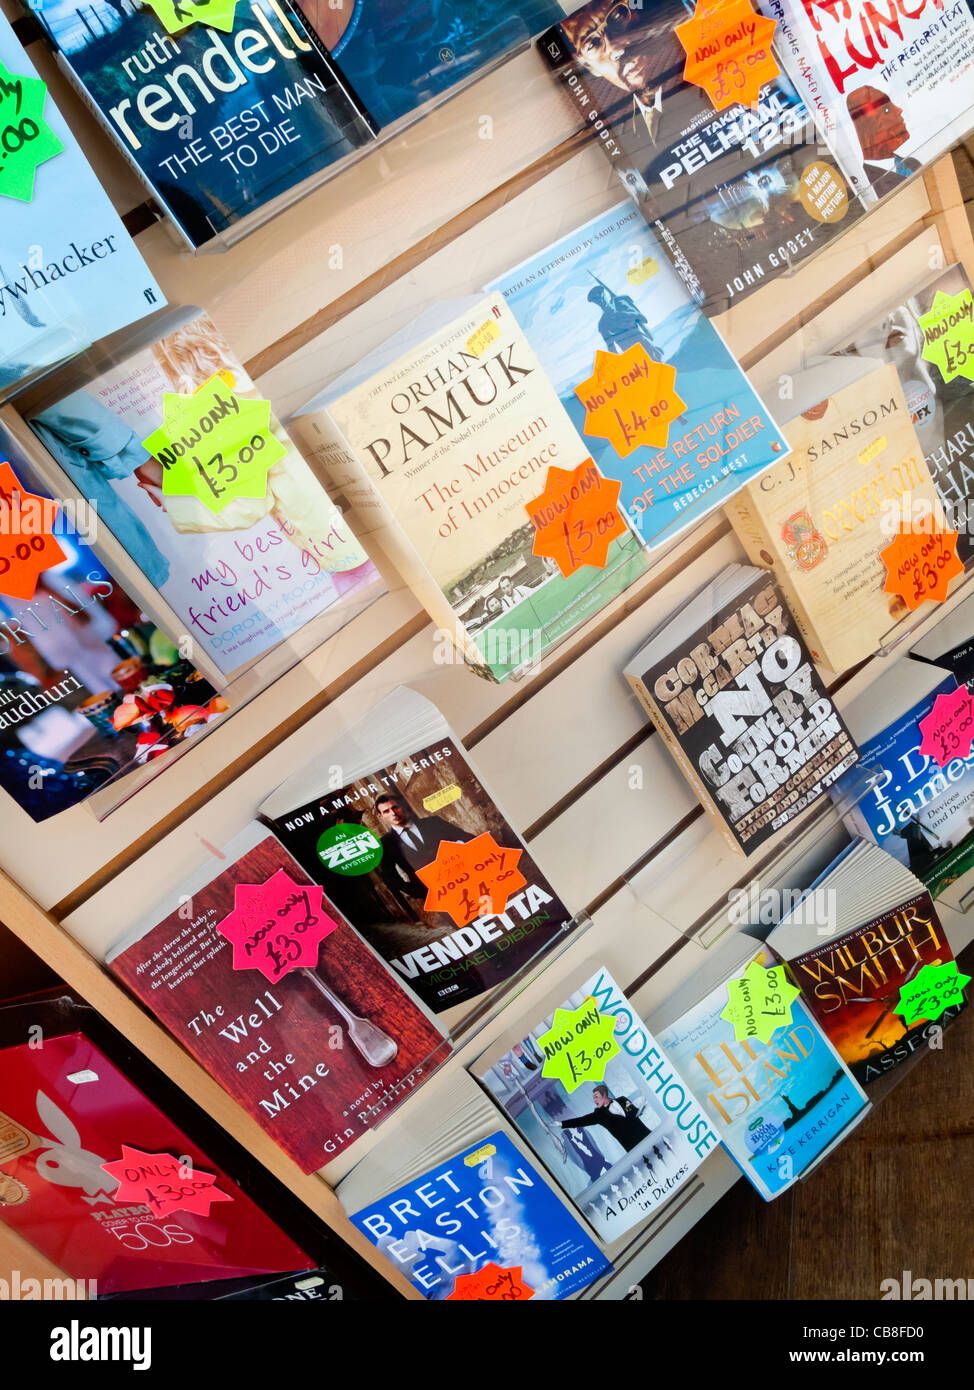 Mass market paperback books for sale in the shop window of a discount bookseller in the UK - Stock Image